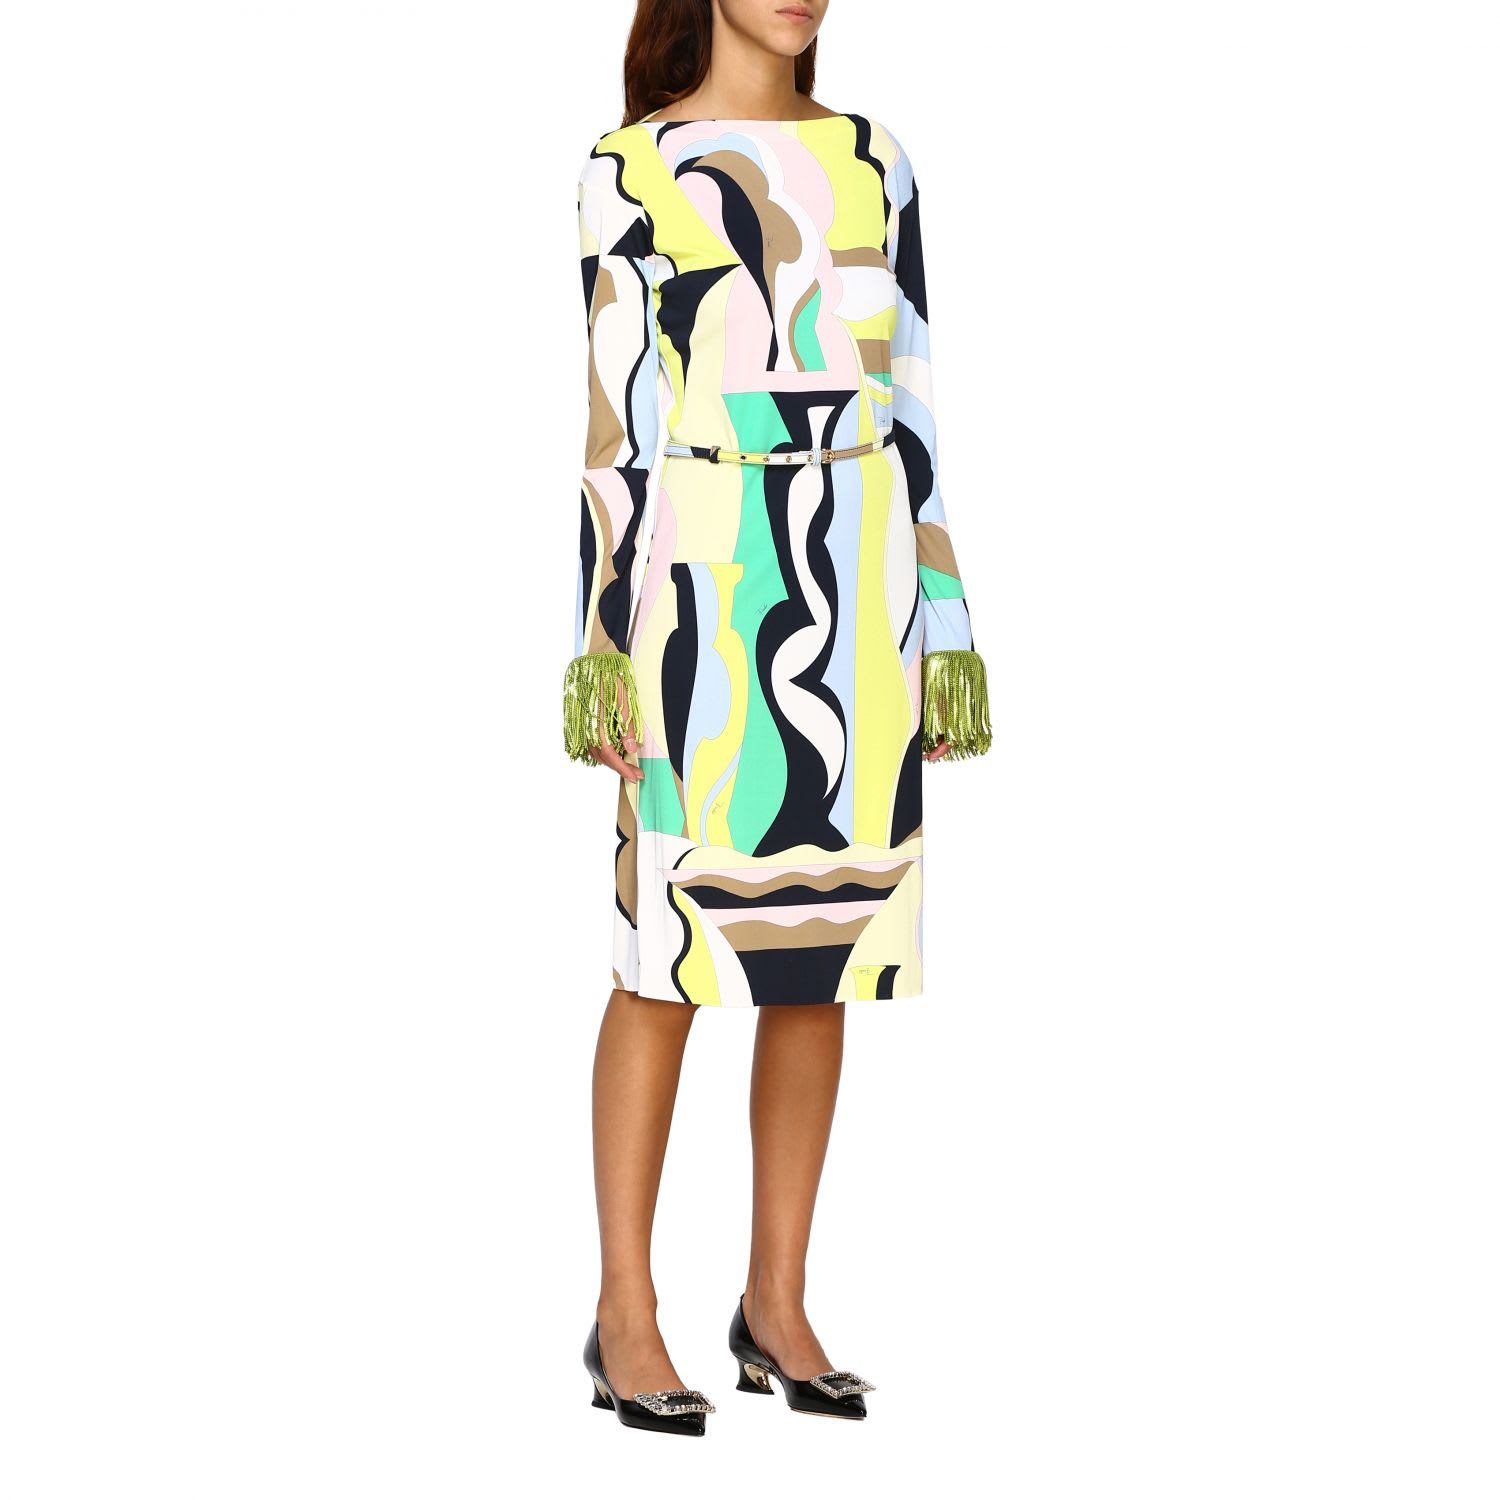 Buy Emilio Pucci Dress Marilyn Emilio Pucci Dress With Vallauris And Fringes Print online, shop Emilio Pucci with free shipping